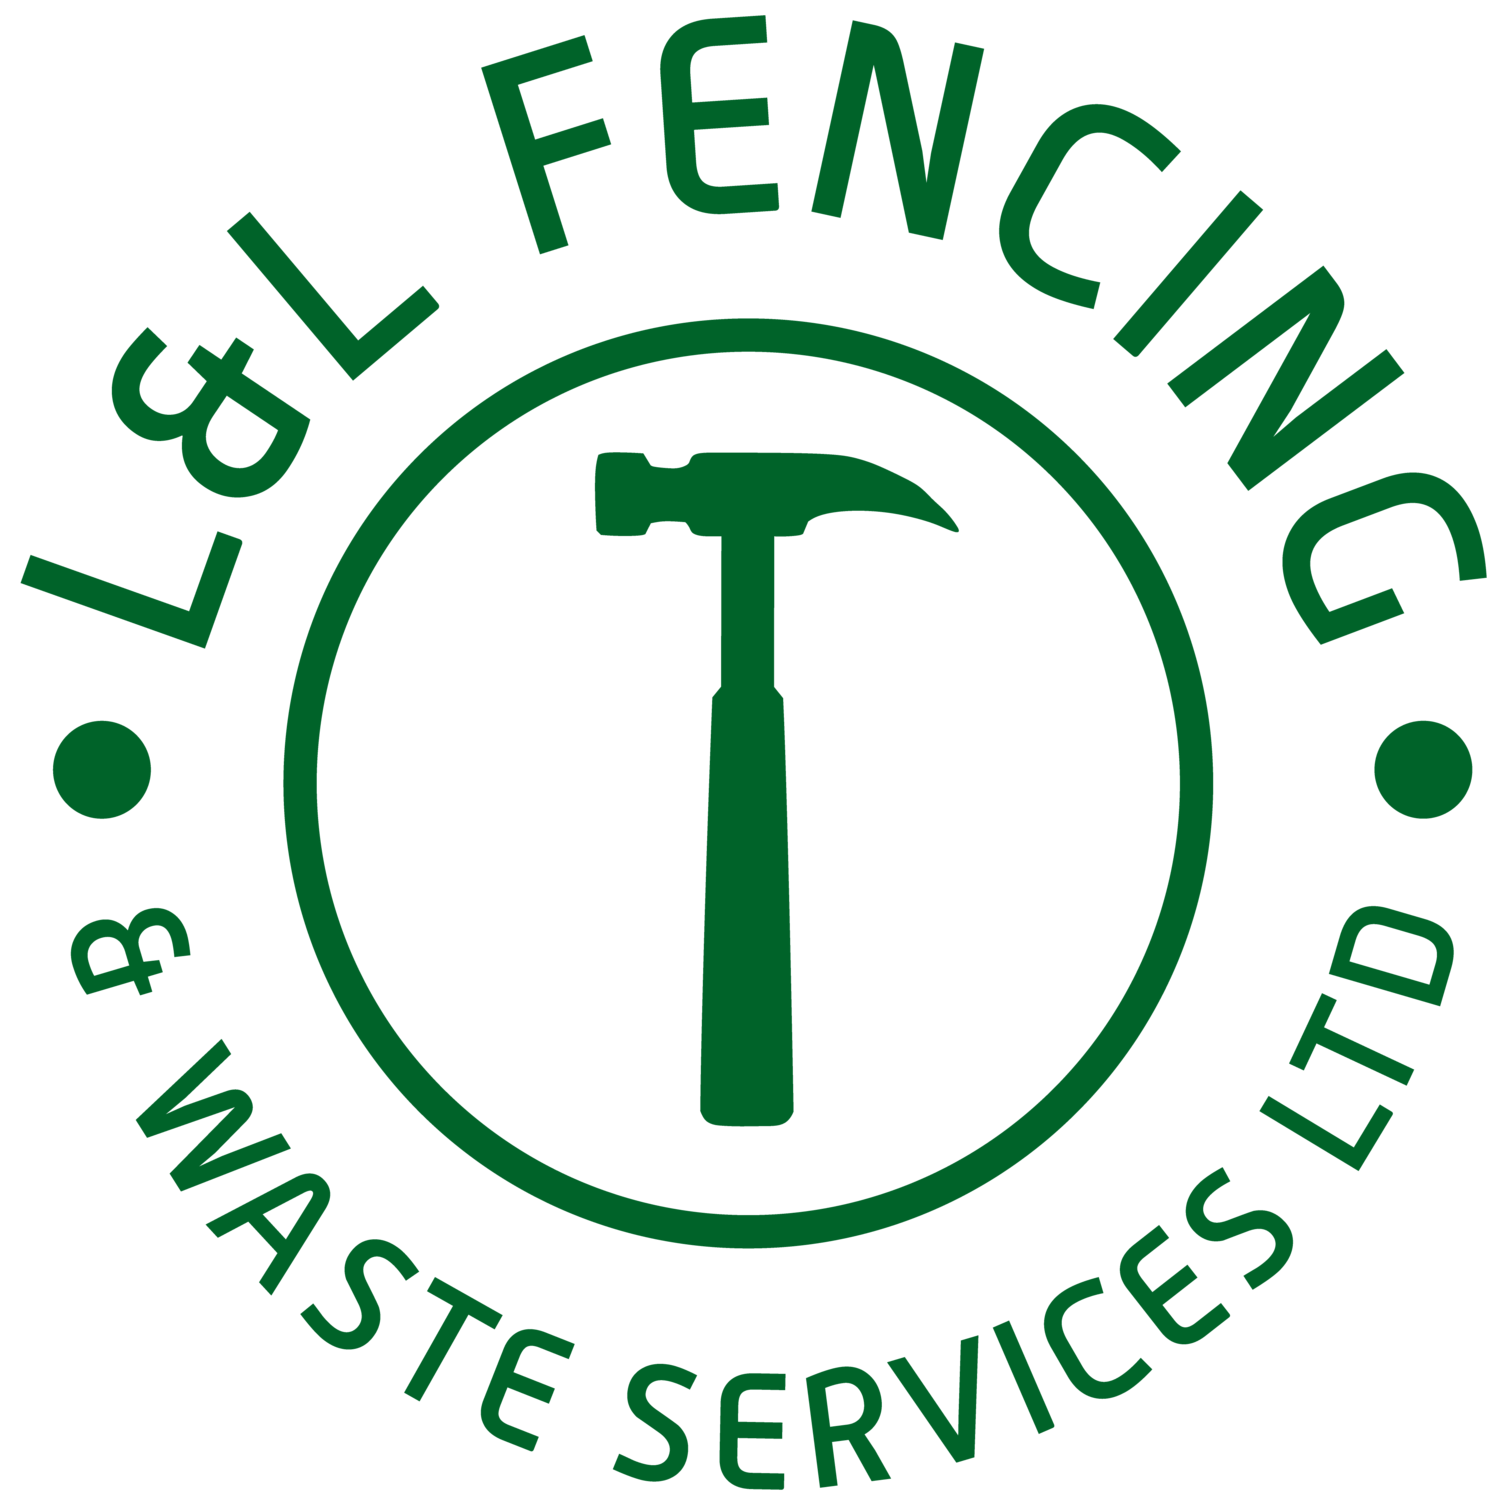 L&L Fencing & Waste Services Ltd Plymouth | Fencing | Decking | Sheds | Gates | Summer House | Bin Sheds